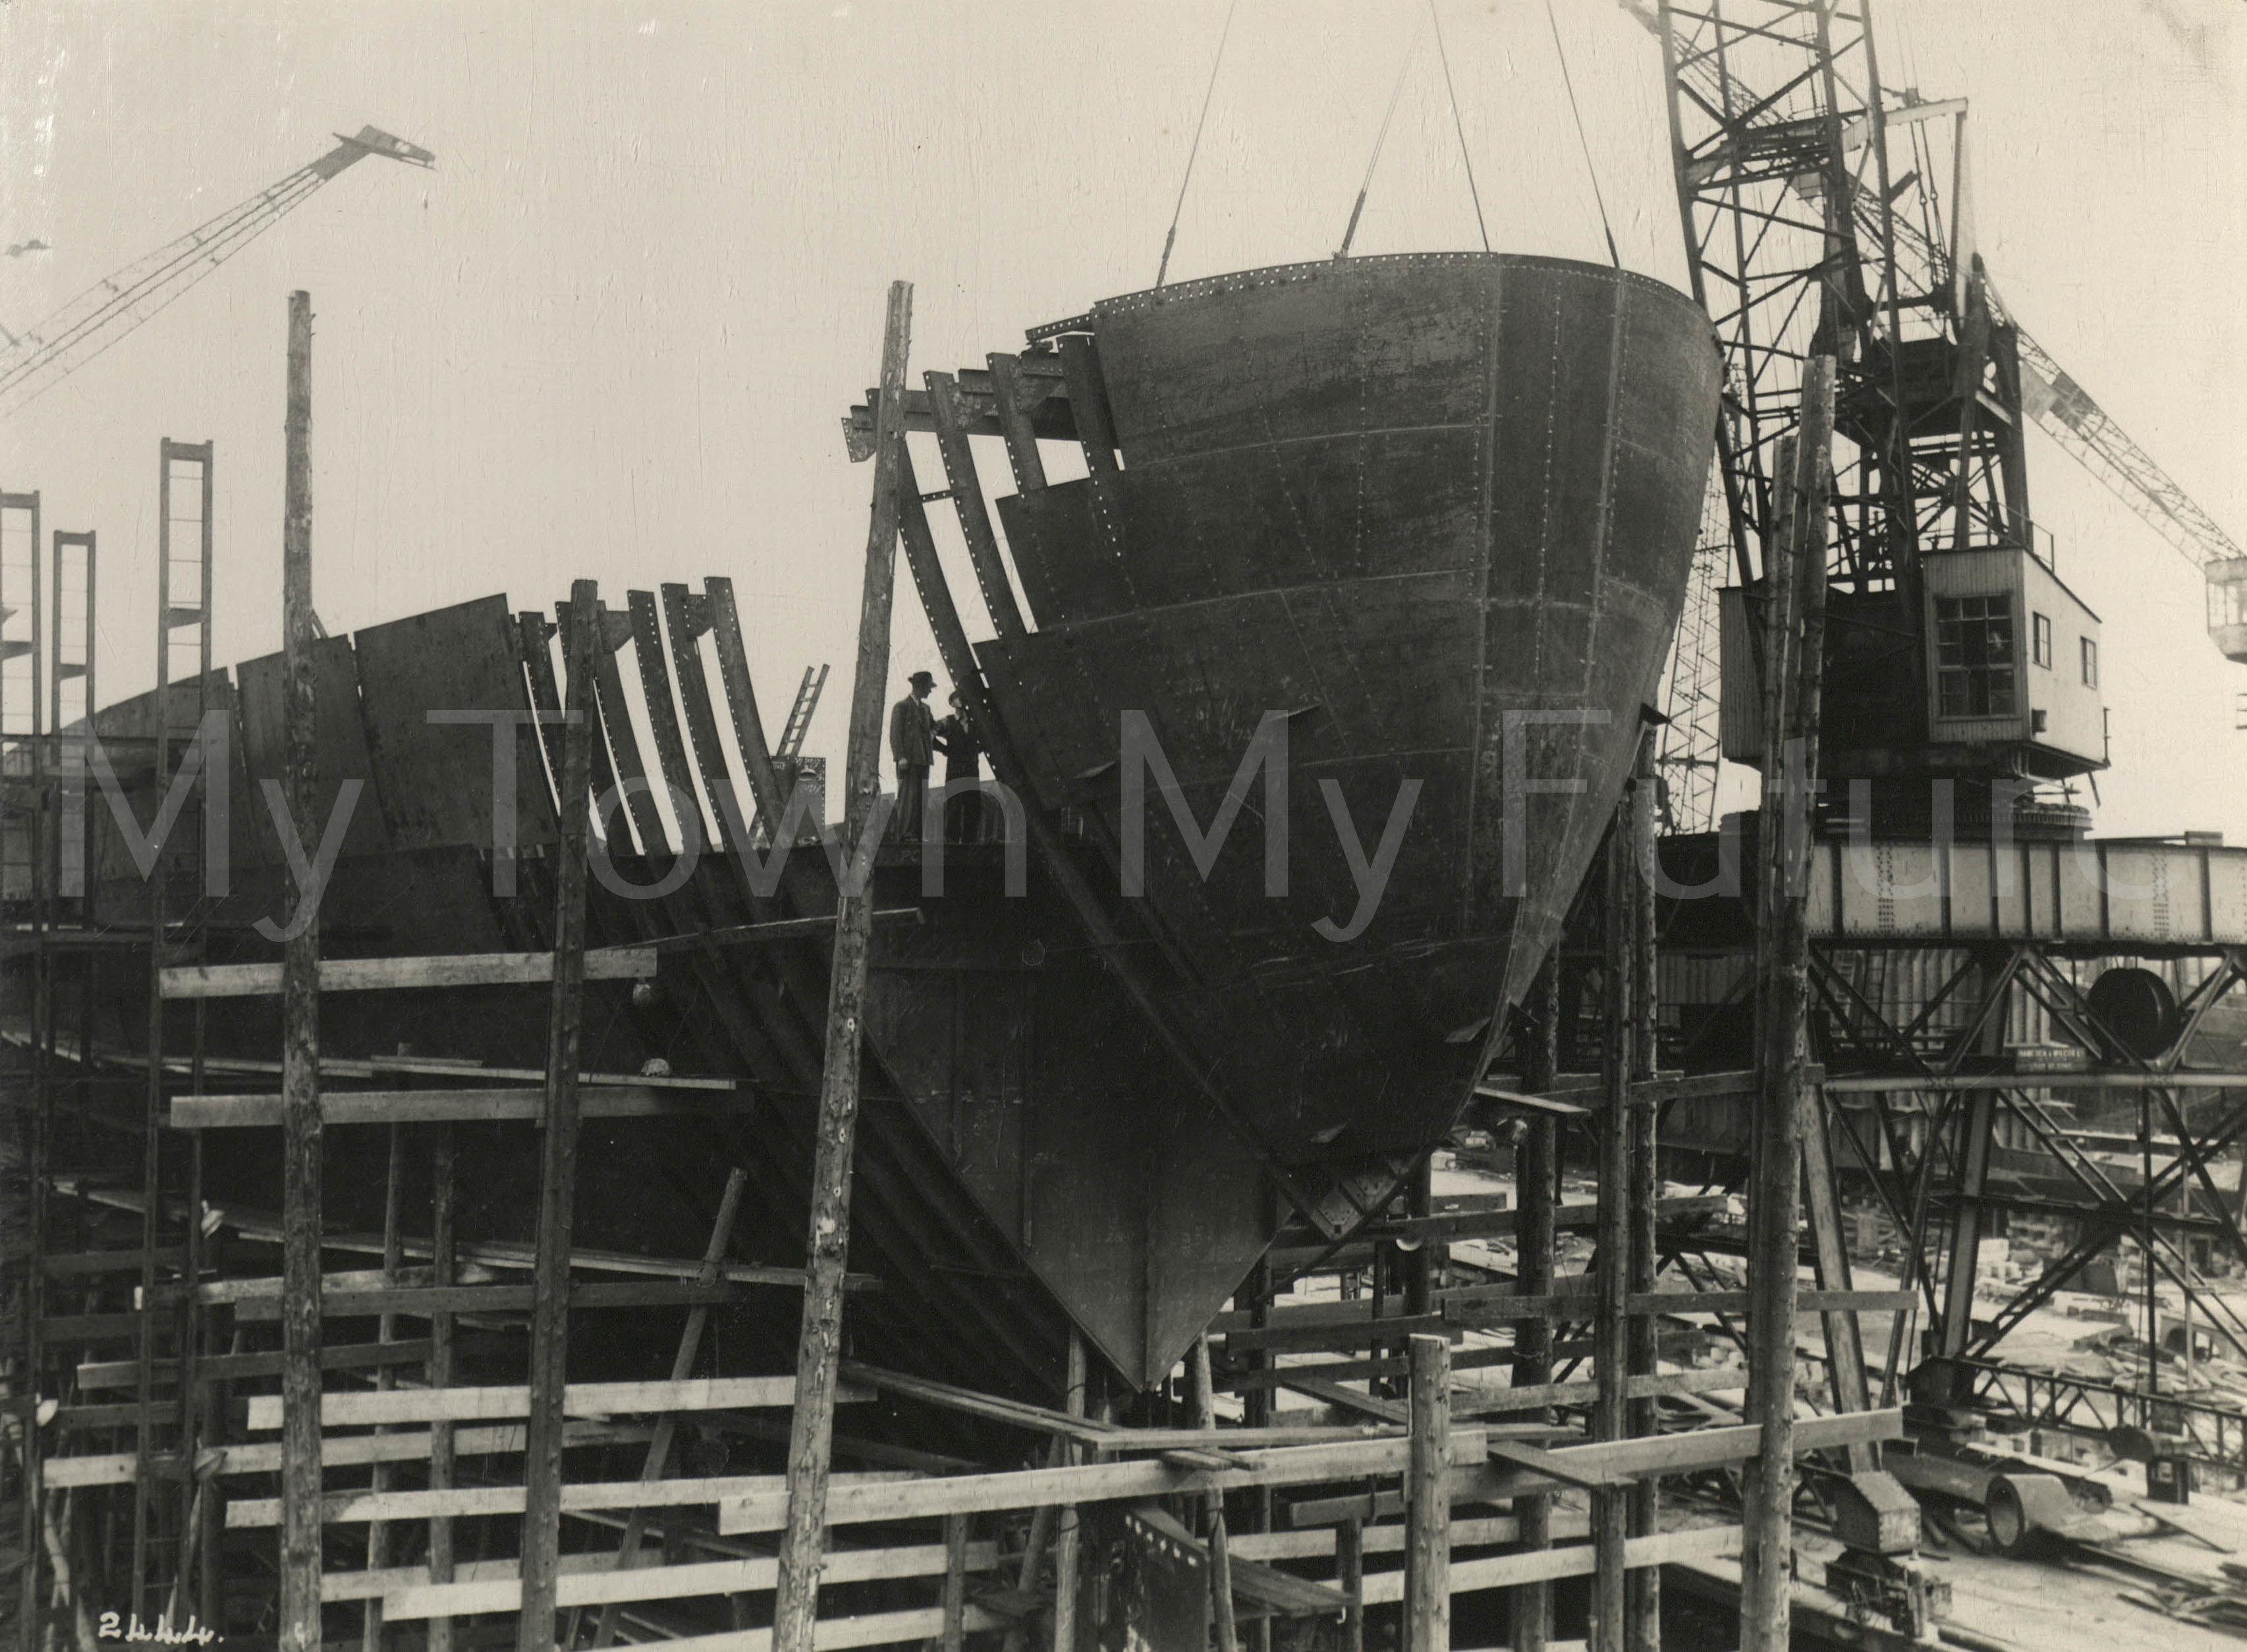 Smith's Dock Ships - WWII Reconstruction Job